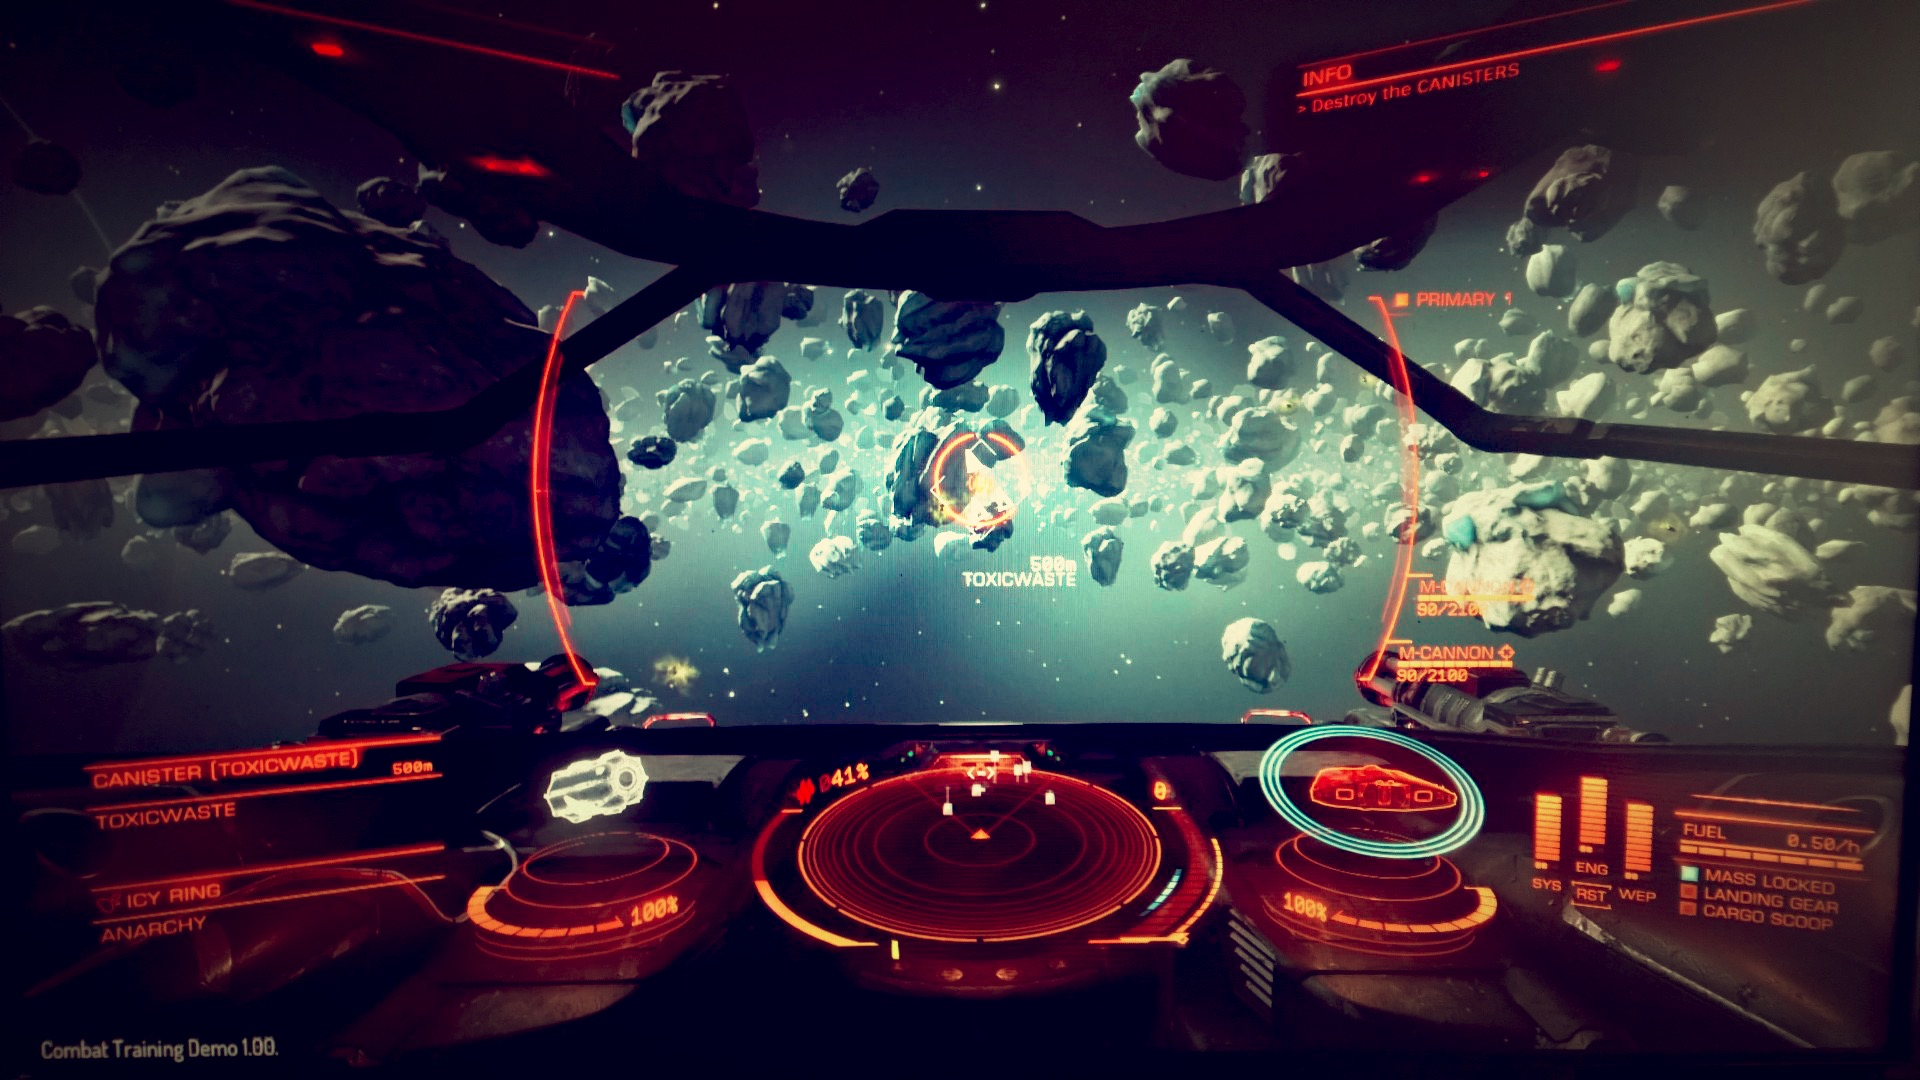 Scene from Elite:Dangerous looking over an asteroid field from the cockpit of a Sidewinder